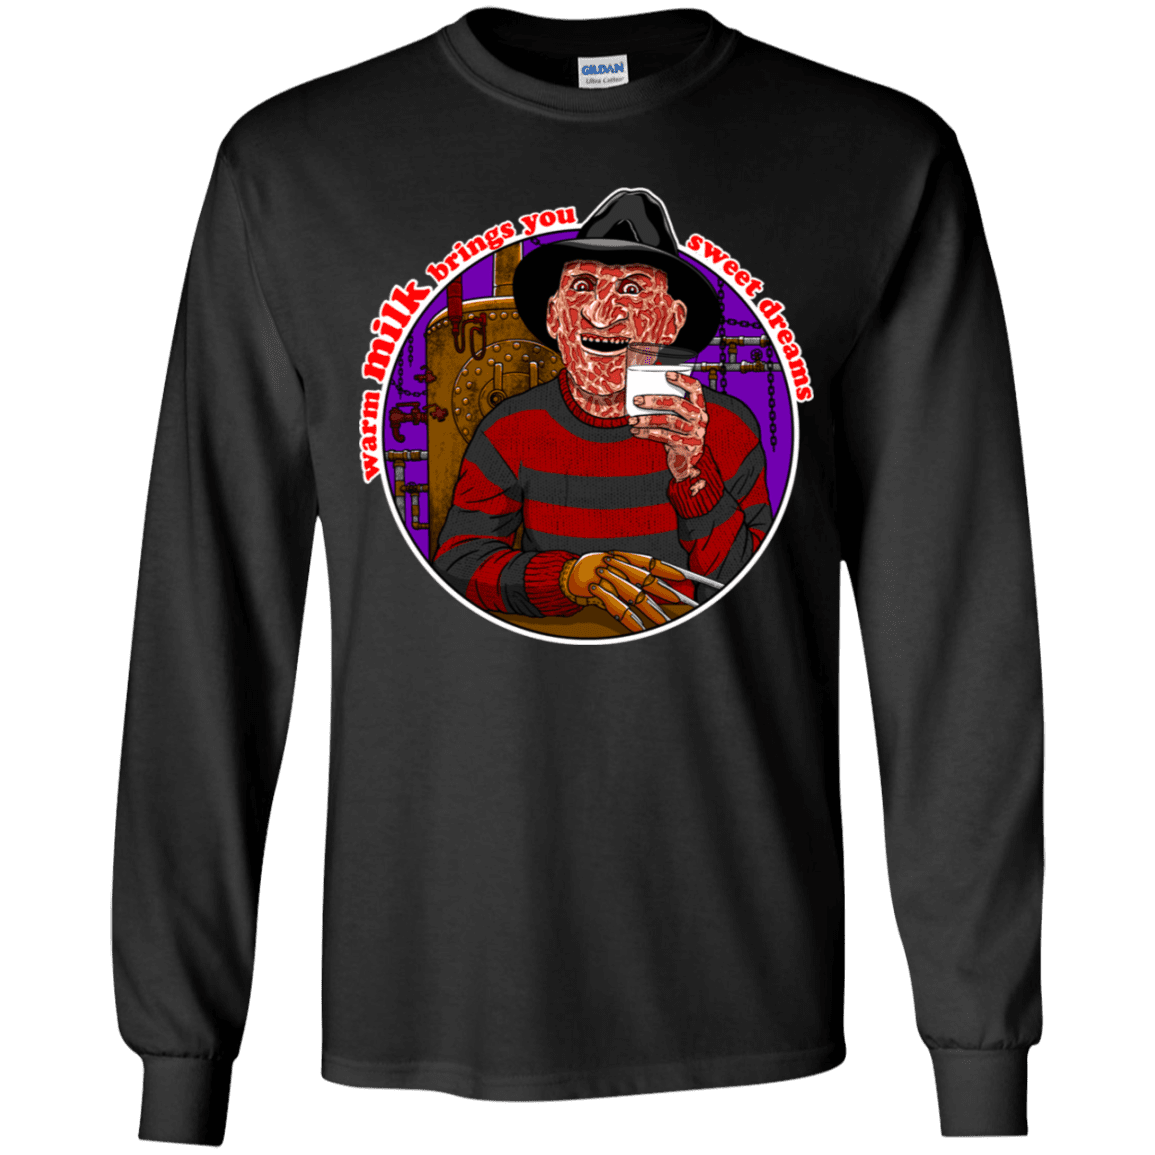 Sweet Dreams Youth Long Sleeve T-Shirt